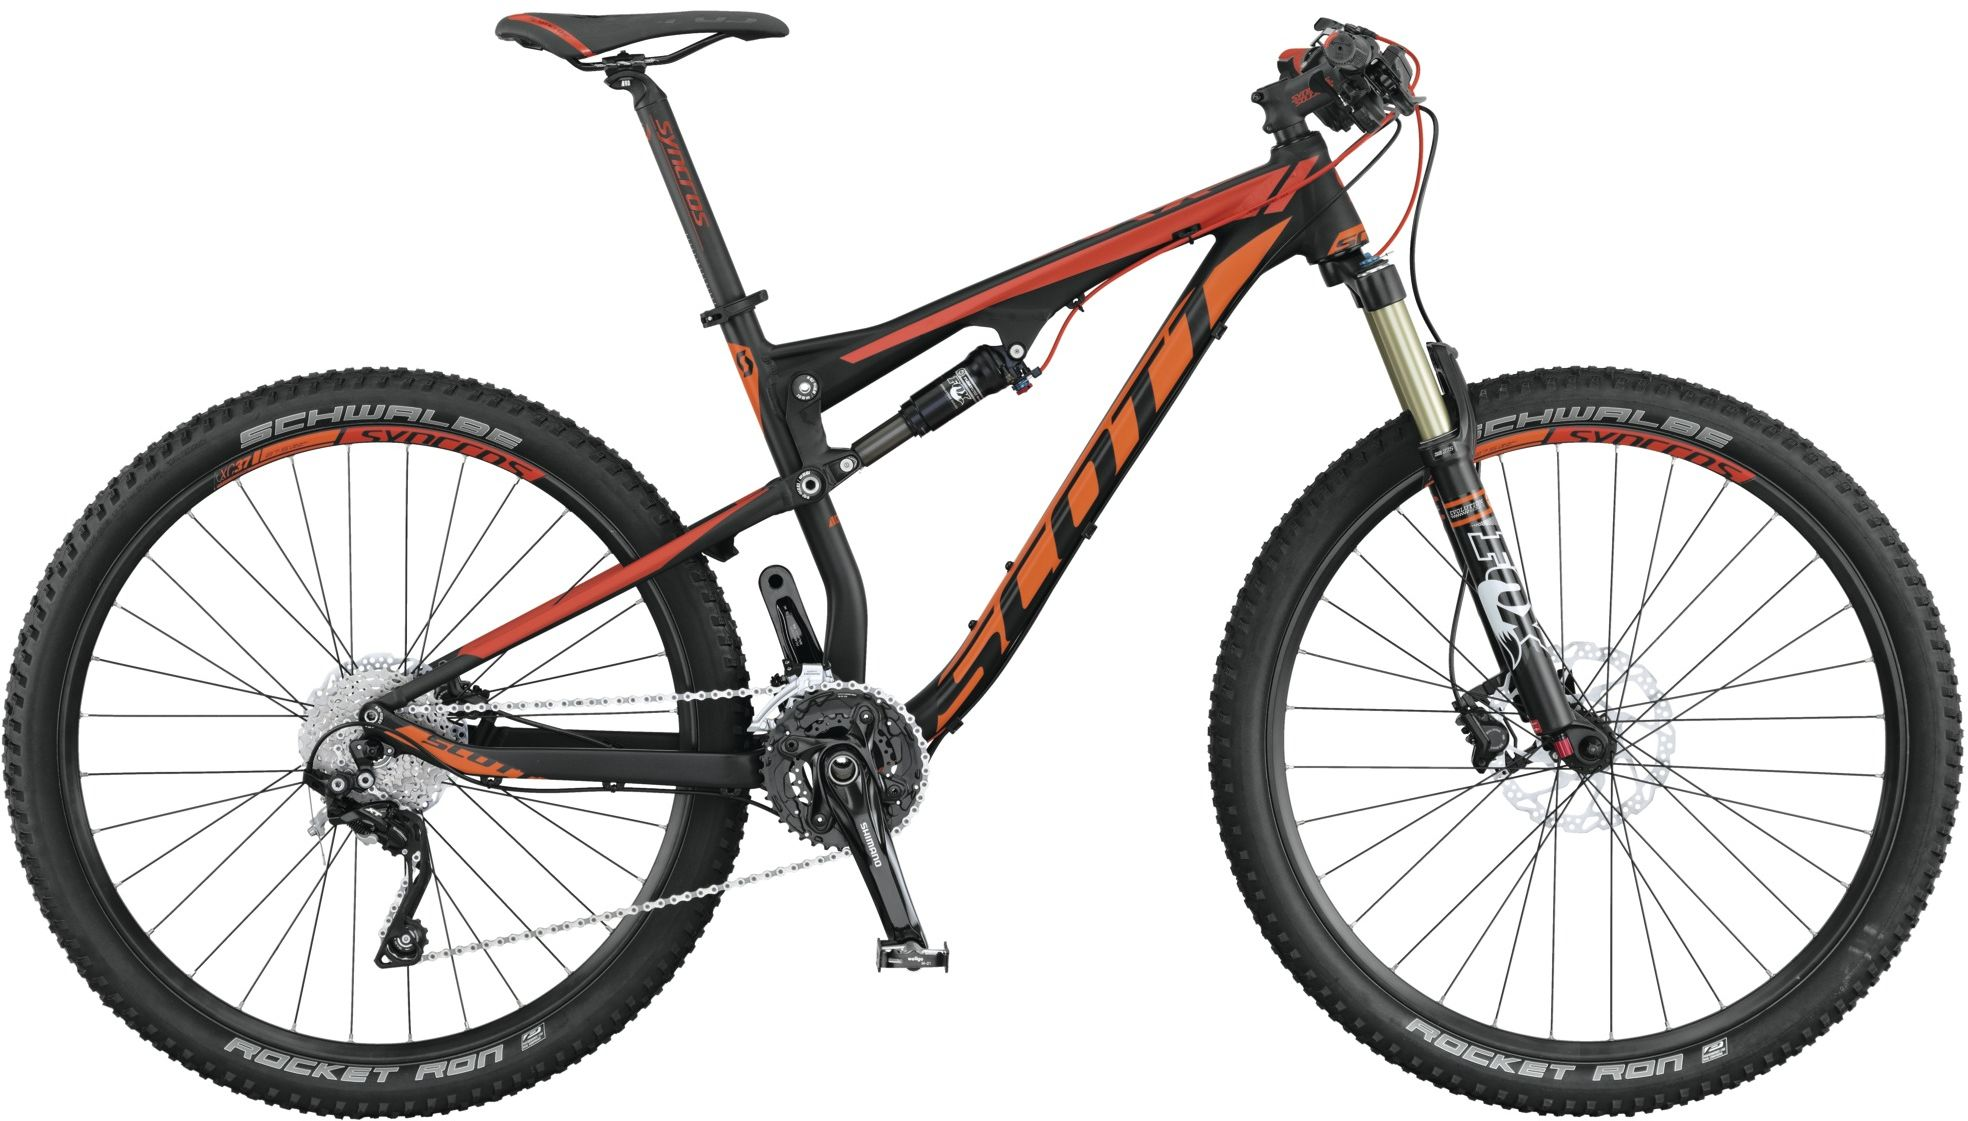 aa7b50a8590 Scott Spark 750 2015 review - The Bike List